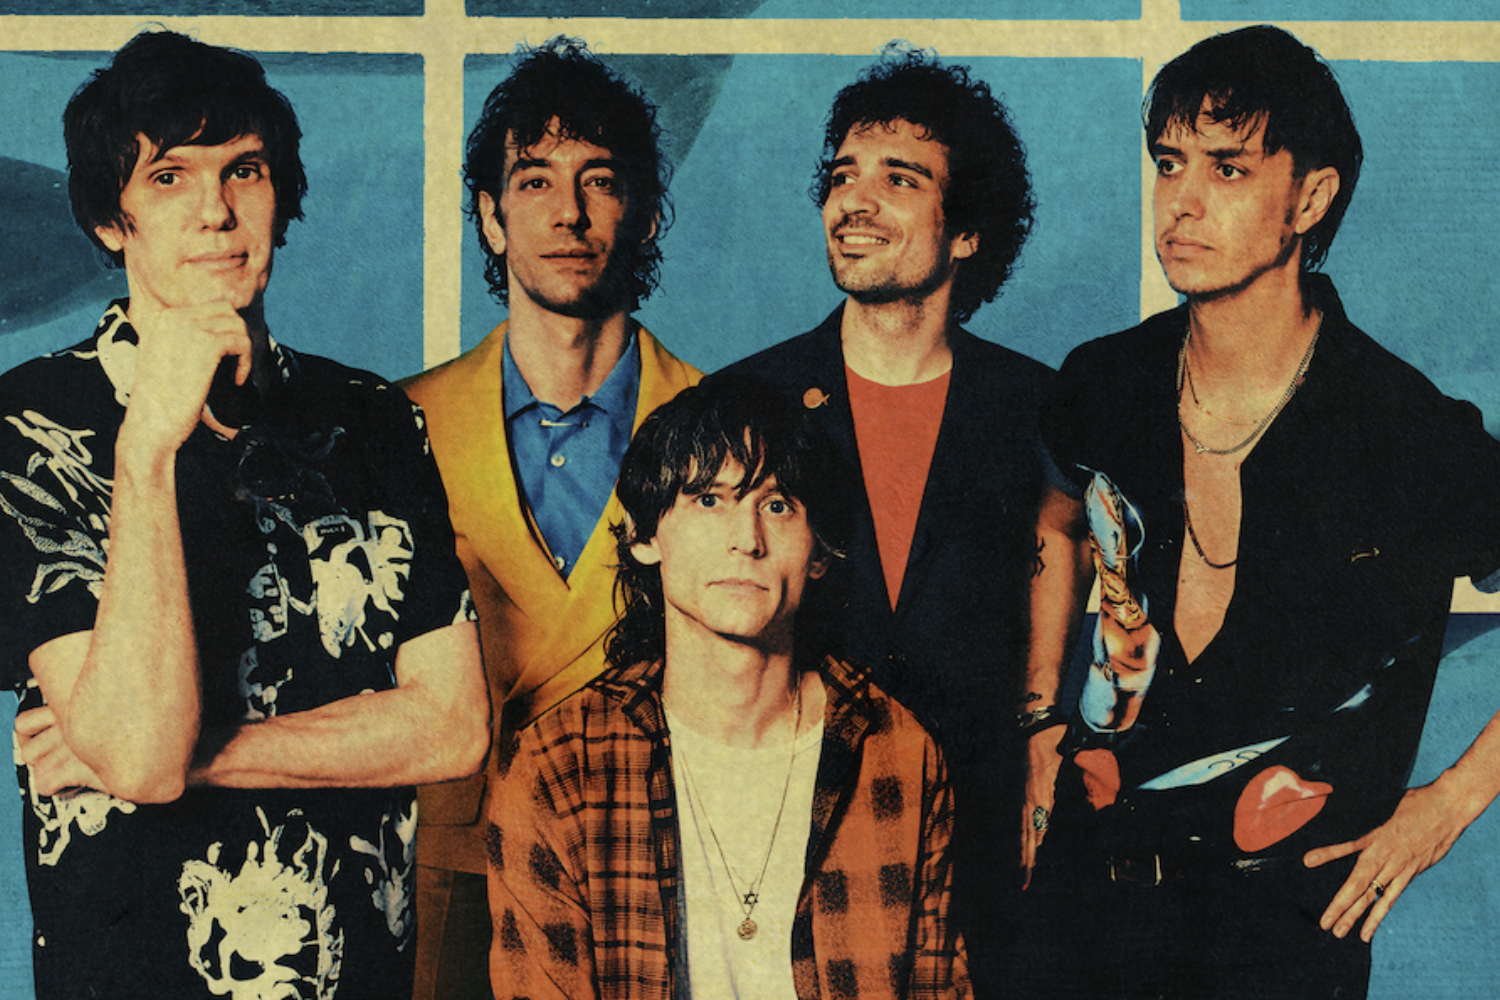 The Strokes unveil new song 'Brooklyn Bridge To Chorus'